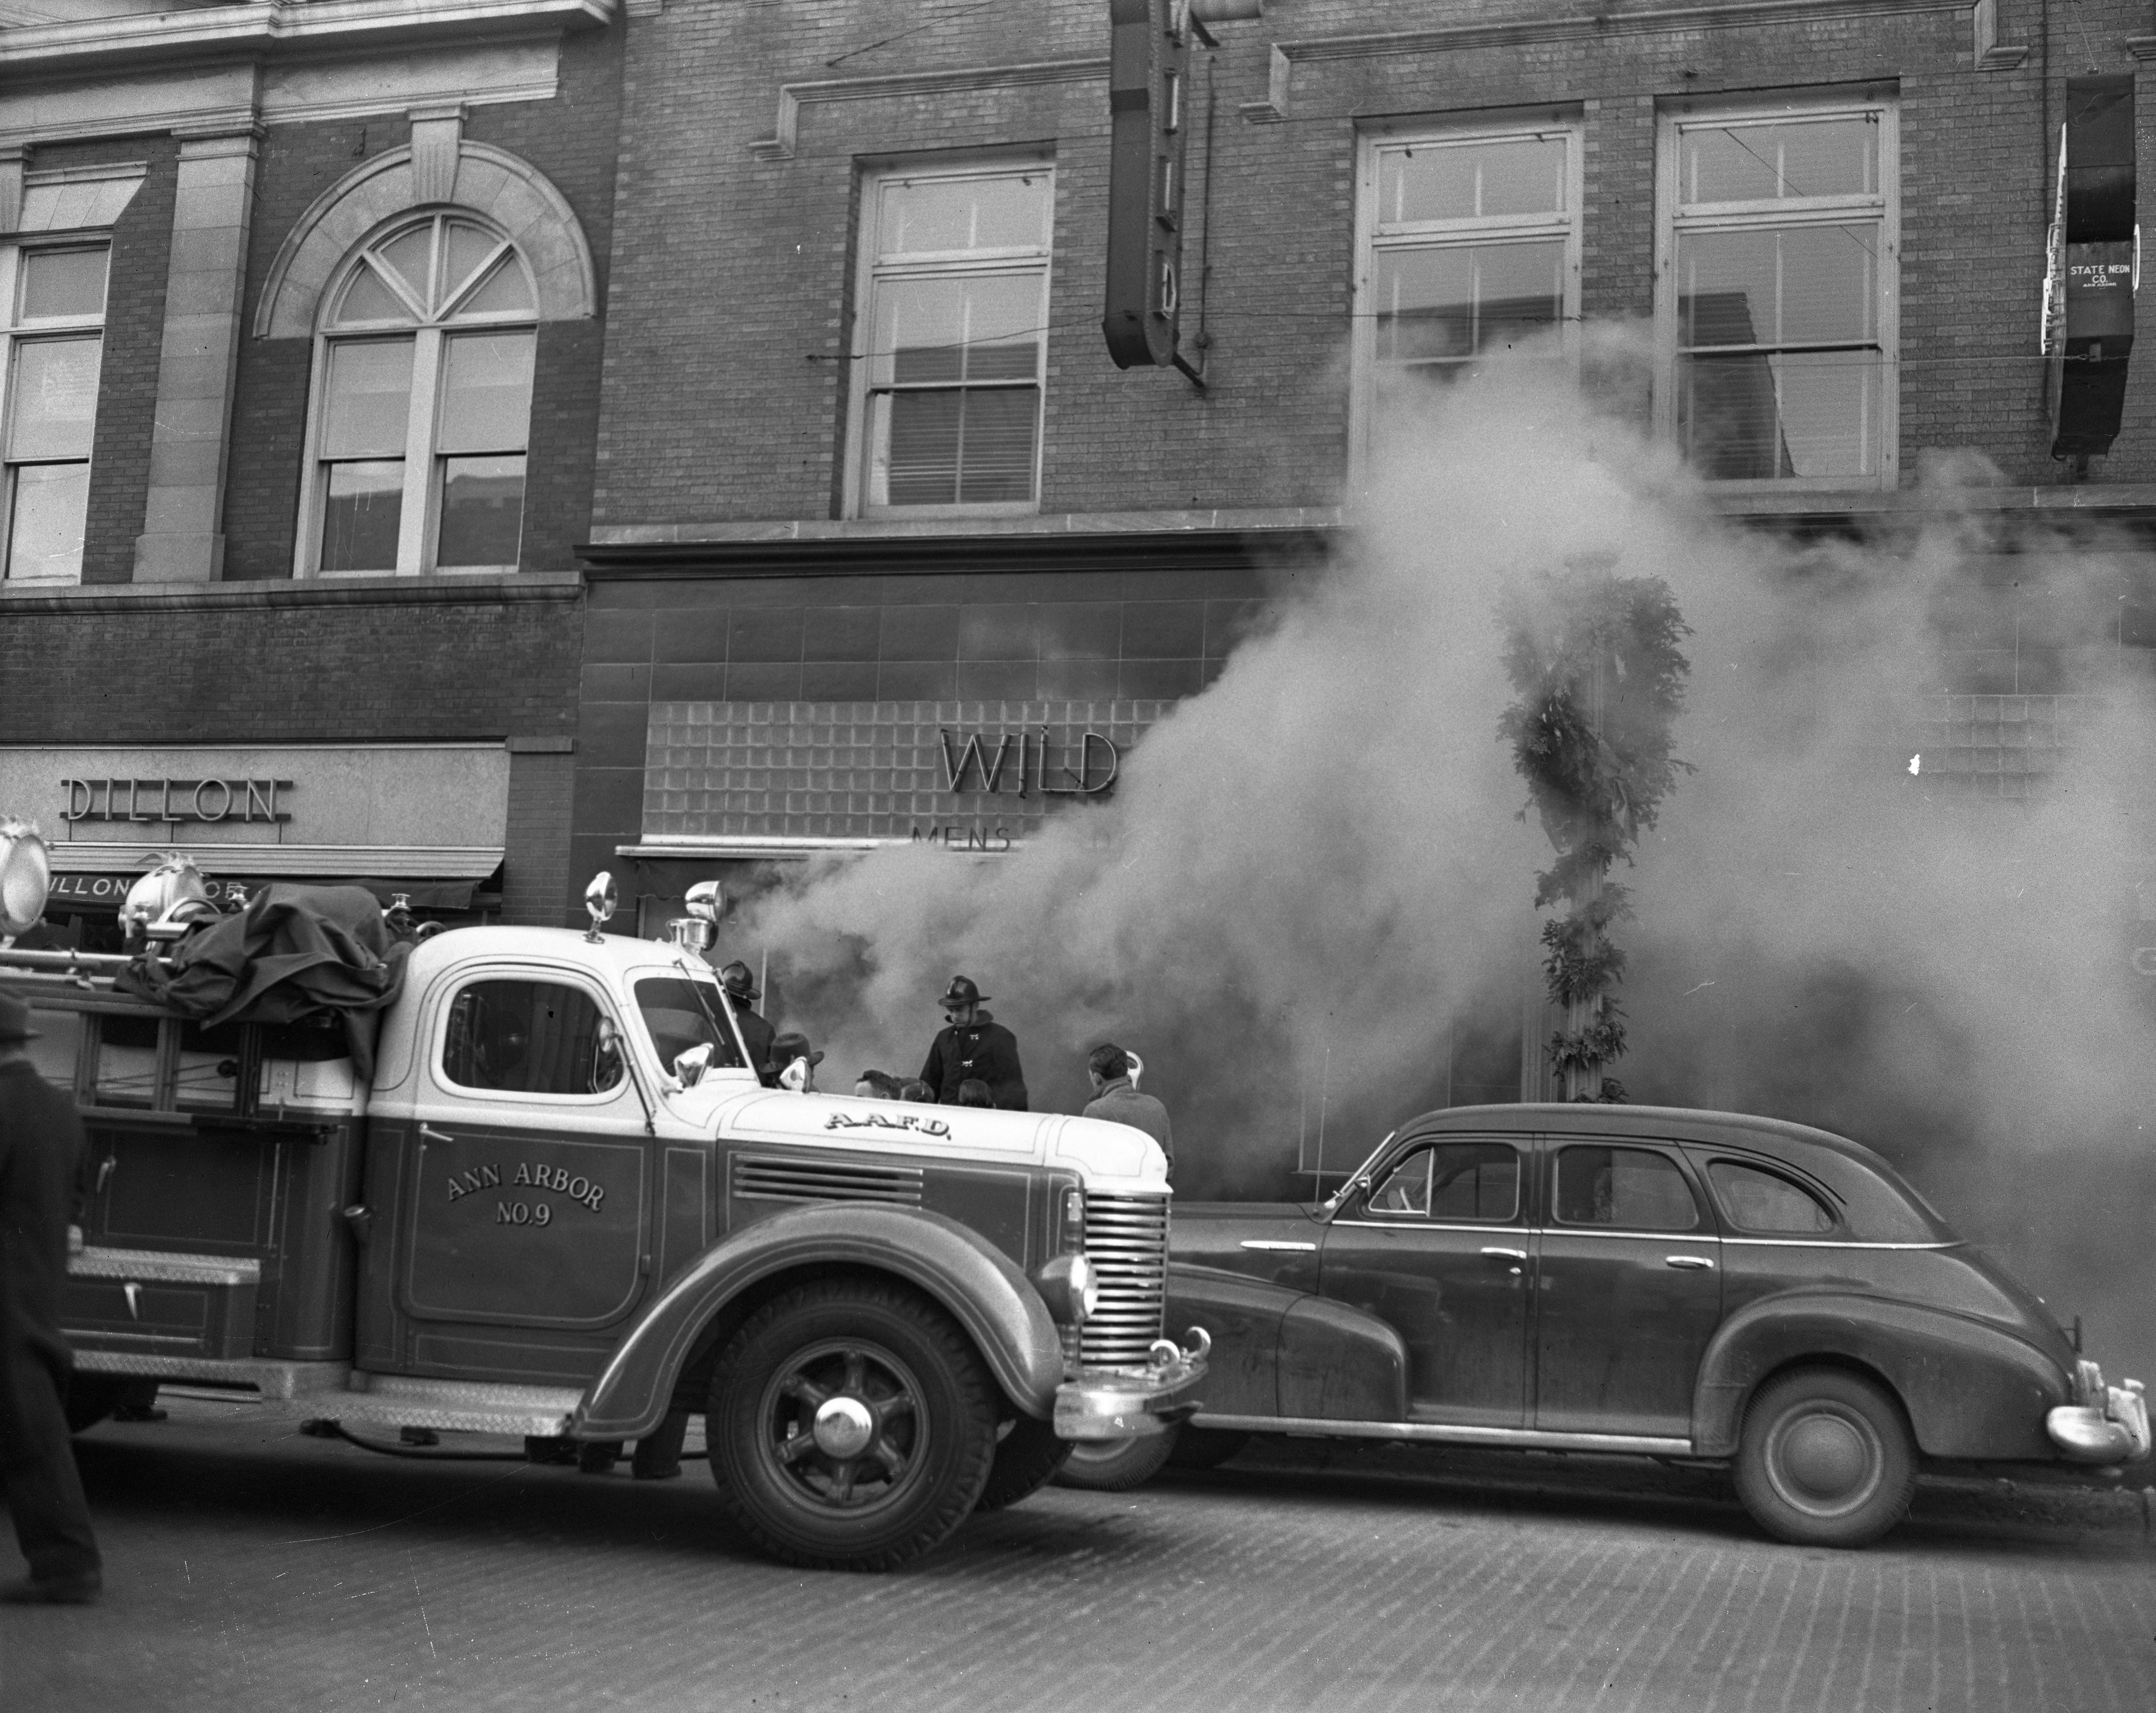 Ann Arbor Fire Truck Battles Wild & Co. Fire On State St, December 1947 image